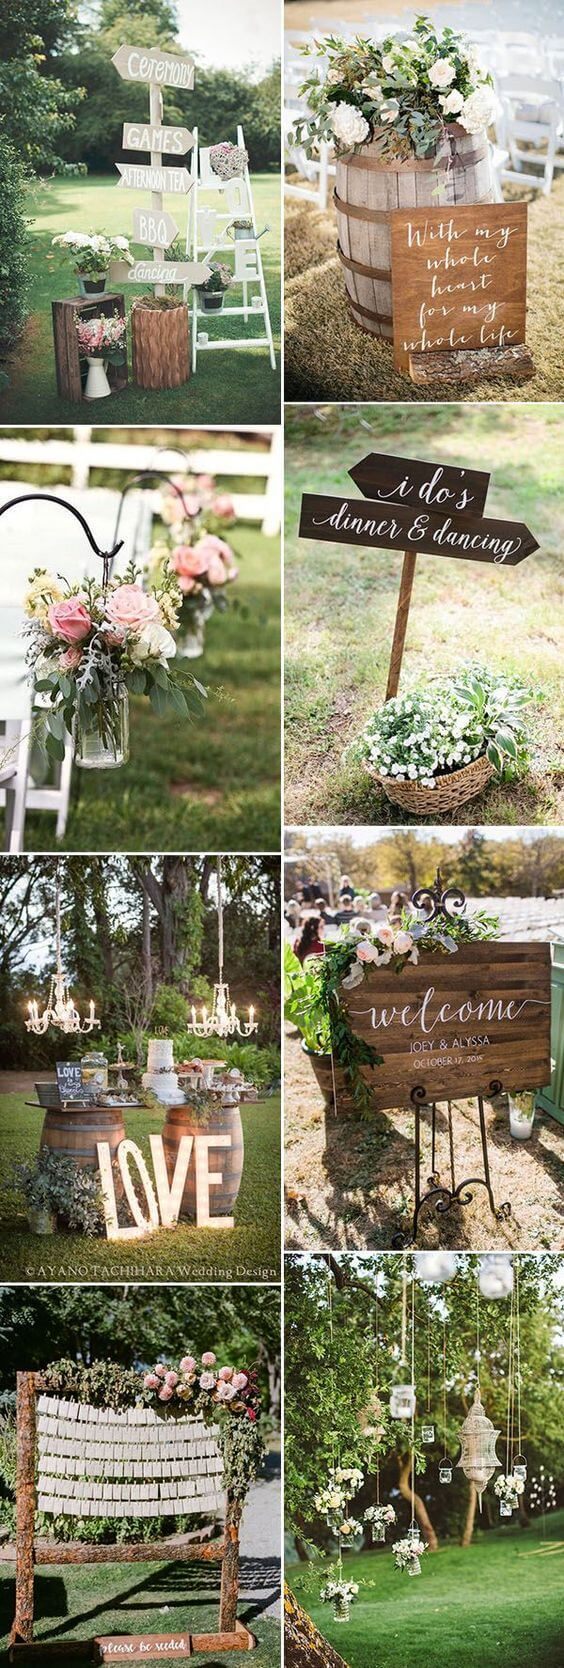 Wedding Welcome sign ideas | Creative & Rustic Backyard Wedding Ideas For Summer & Fall